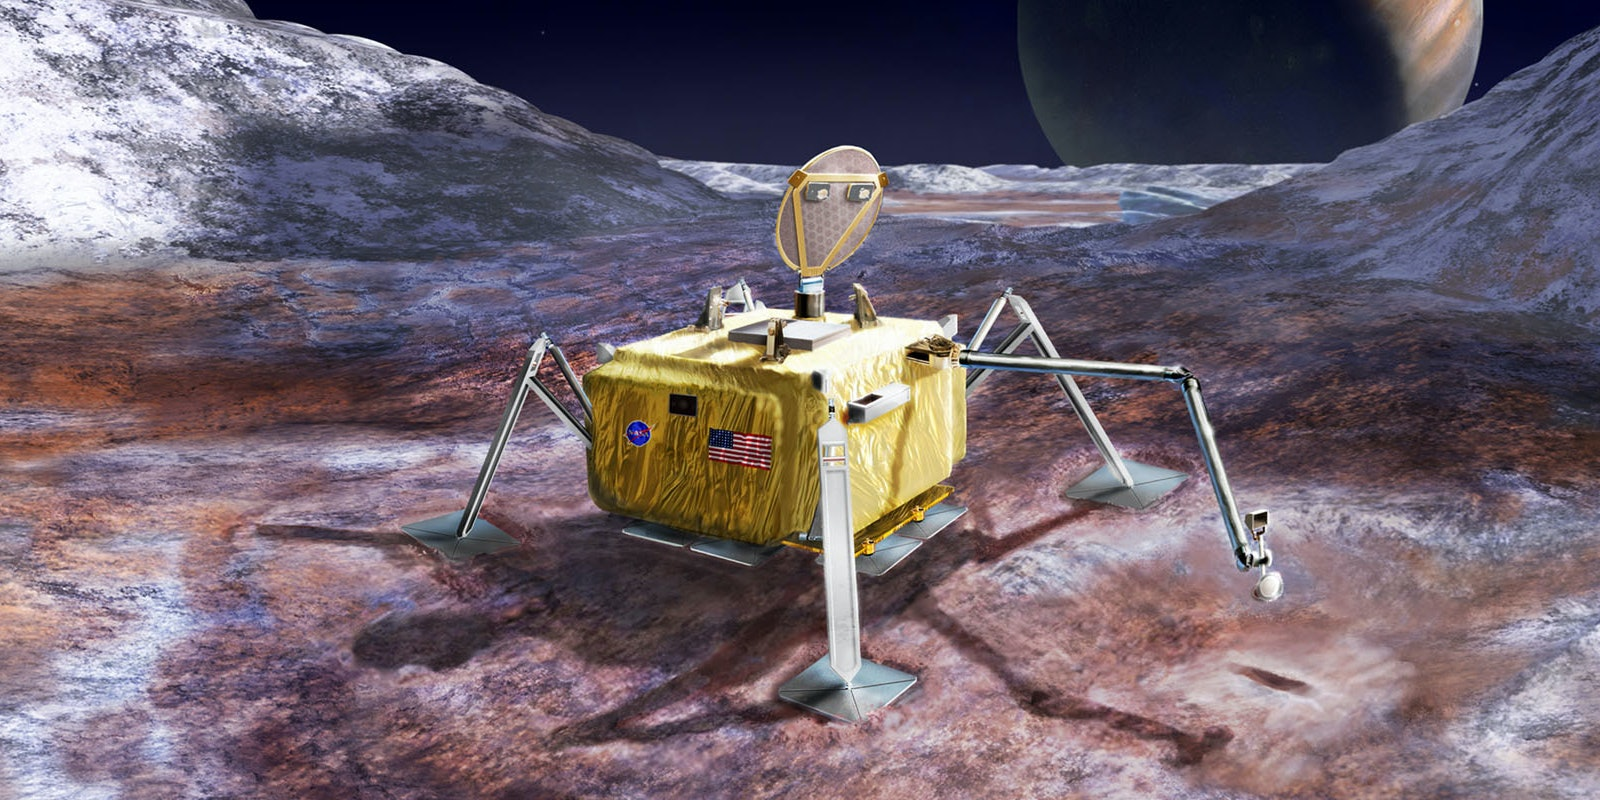 Here's What a Mission to Europa to Find Aliens Might Look Like